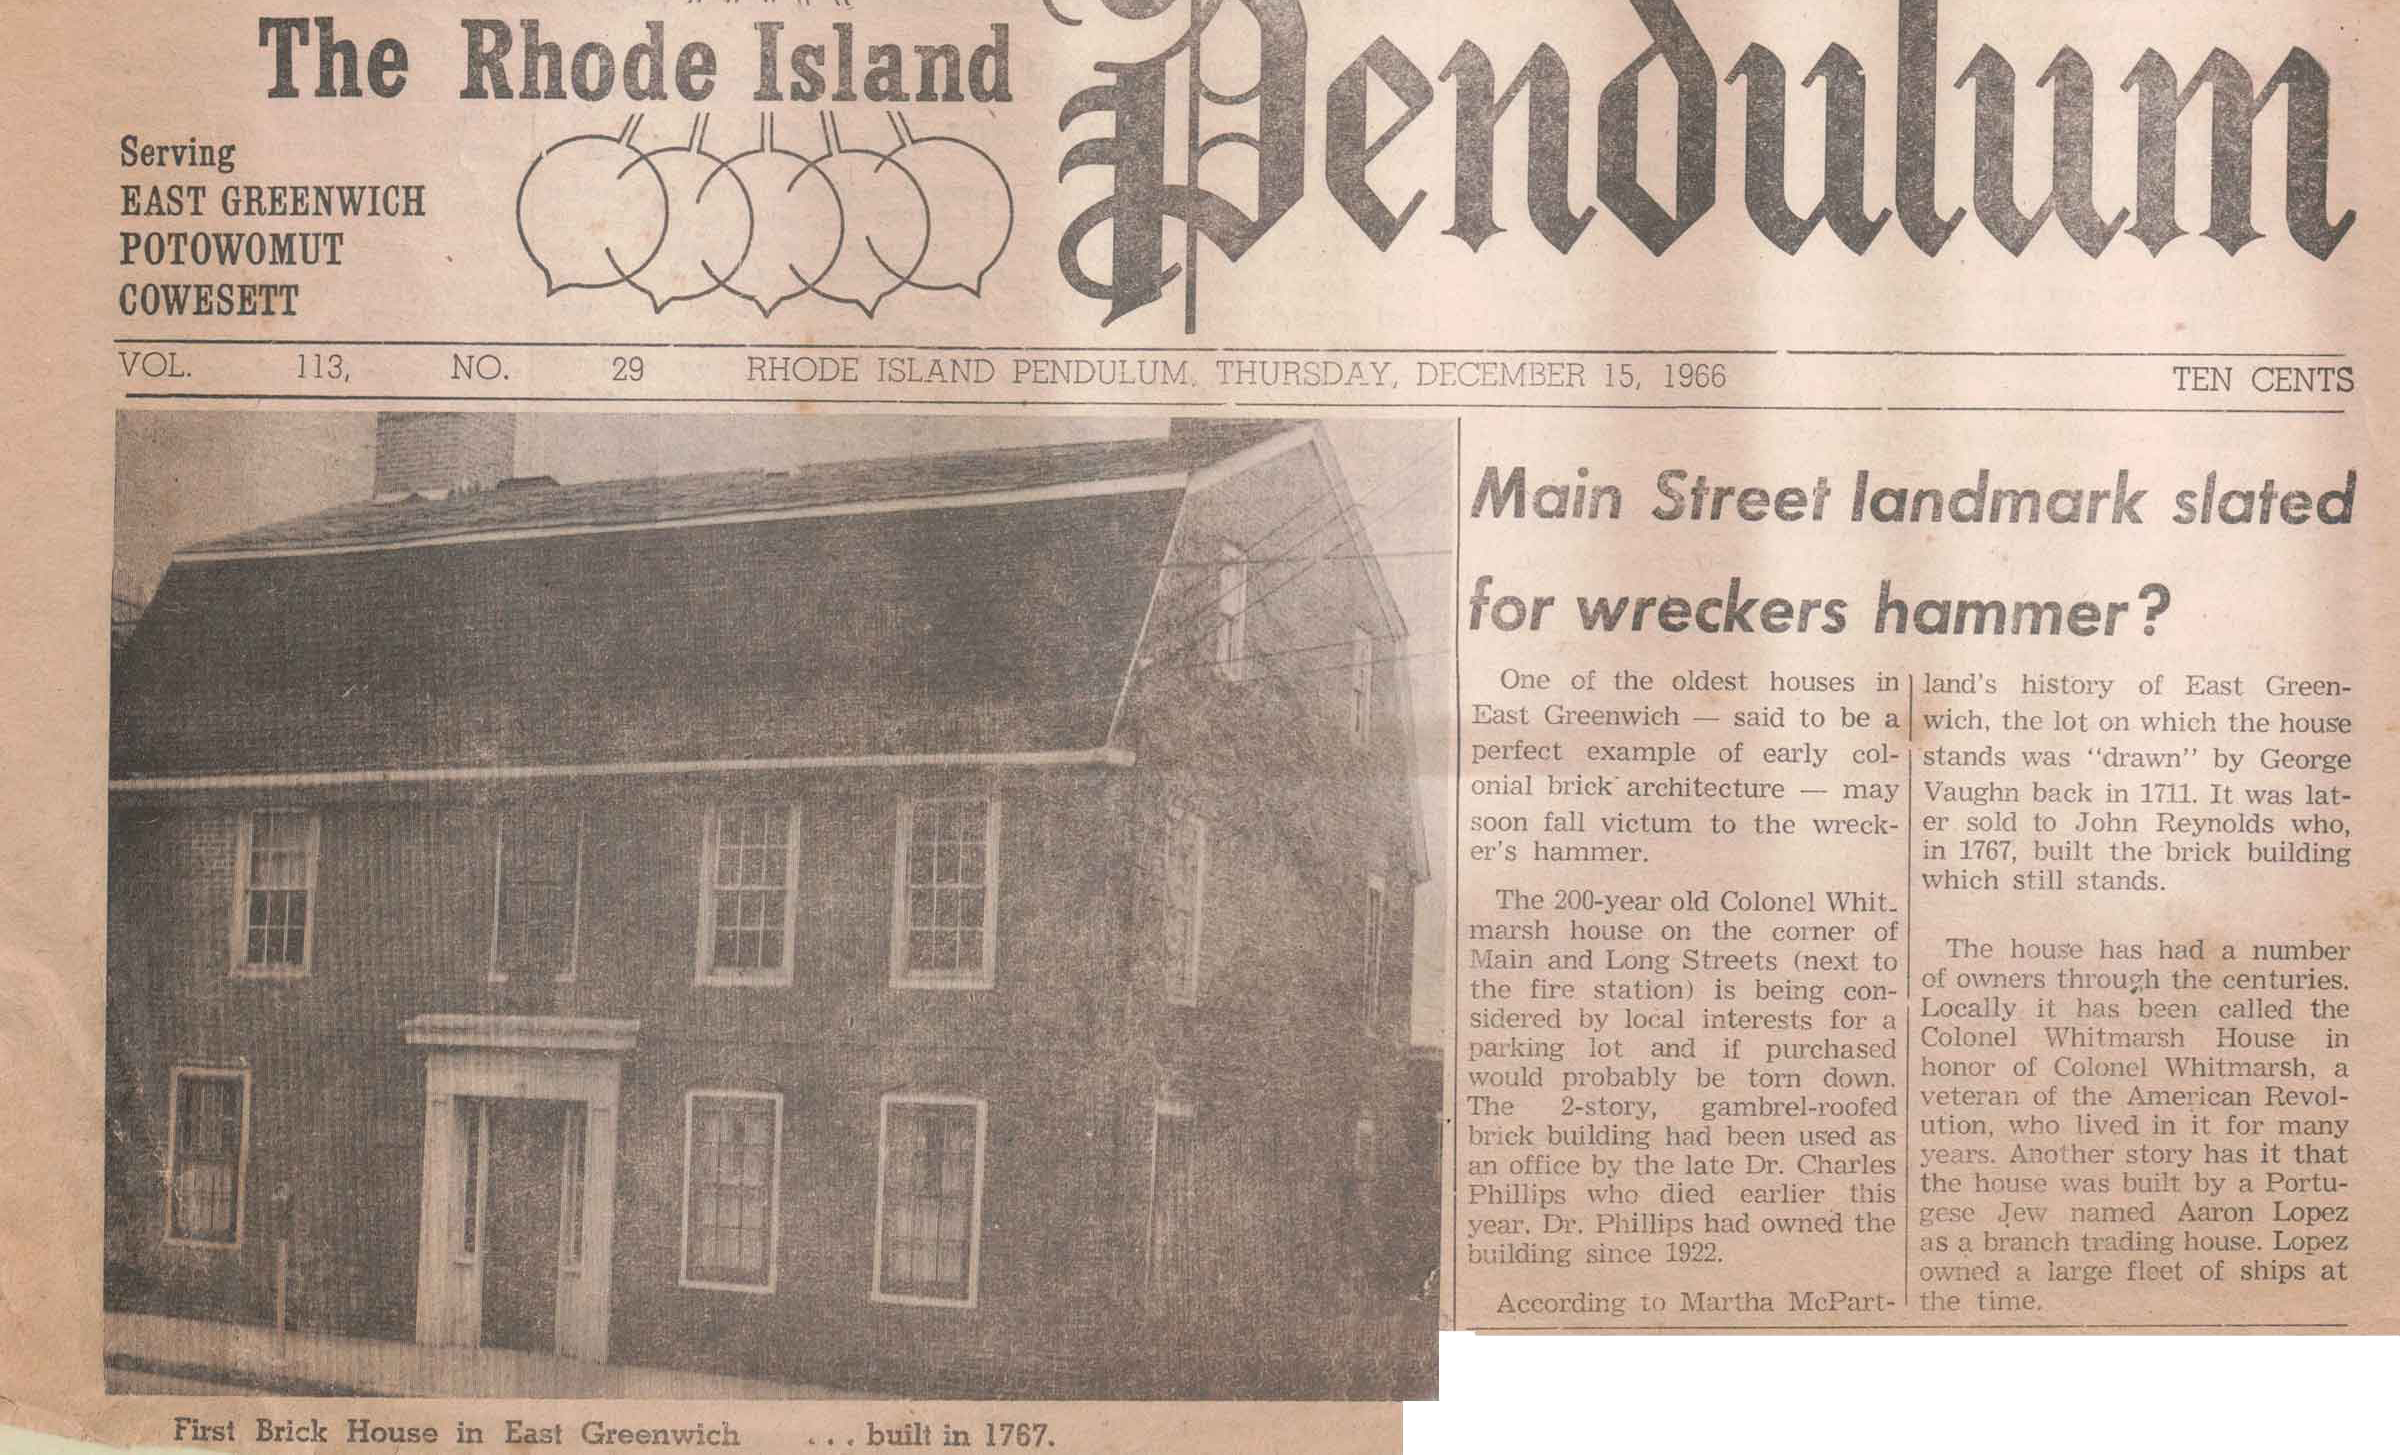 The Rhode Island Pendulum from December 15, 1966 with an article about the Brick House.